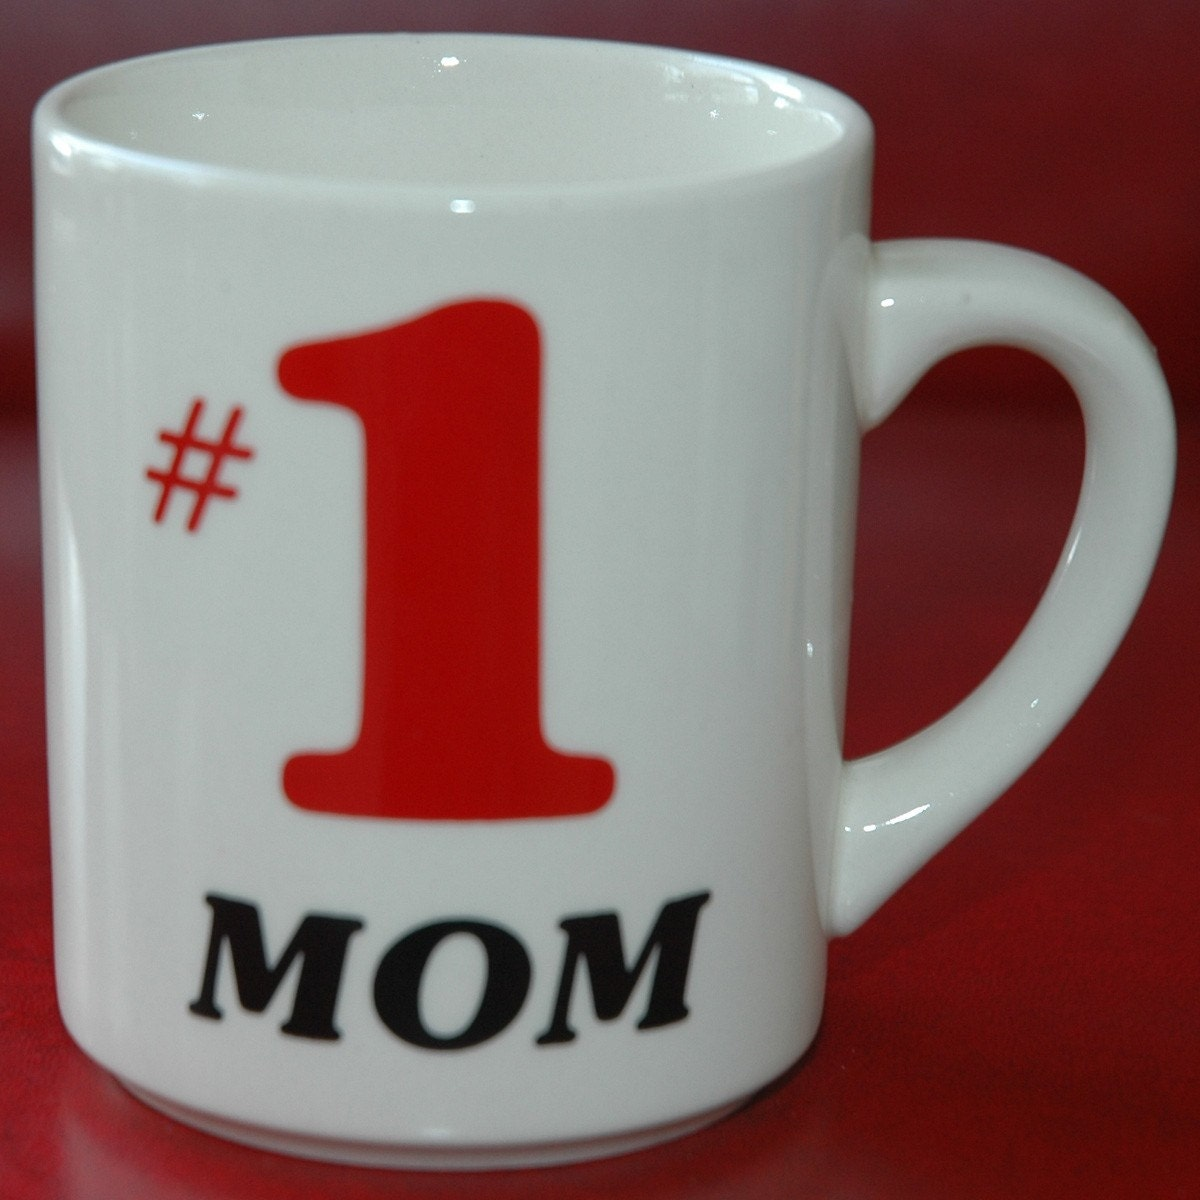 Mother's Day Flags - CRW Flags Store in Glen Burnie, Maryland |Number One Cup Mom